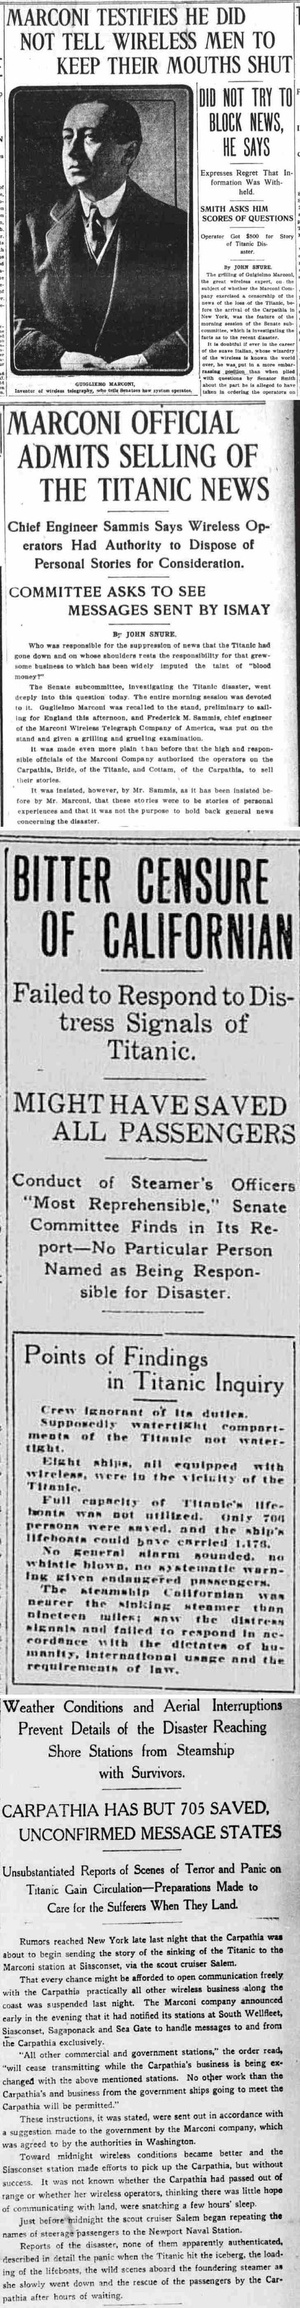 Titanic Disaster Newspapers April 27, 1912 - April 14, 1922 - Download